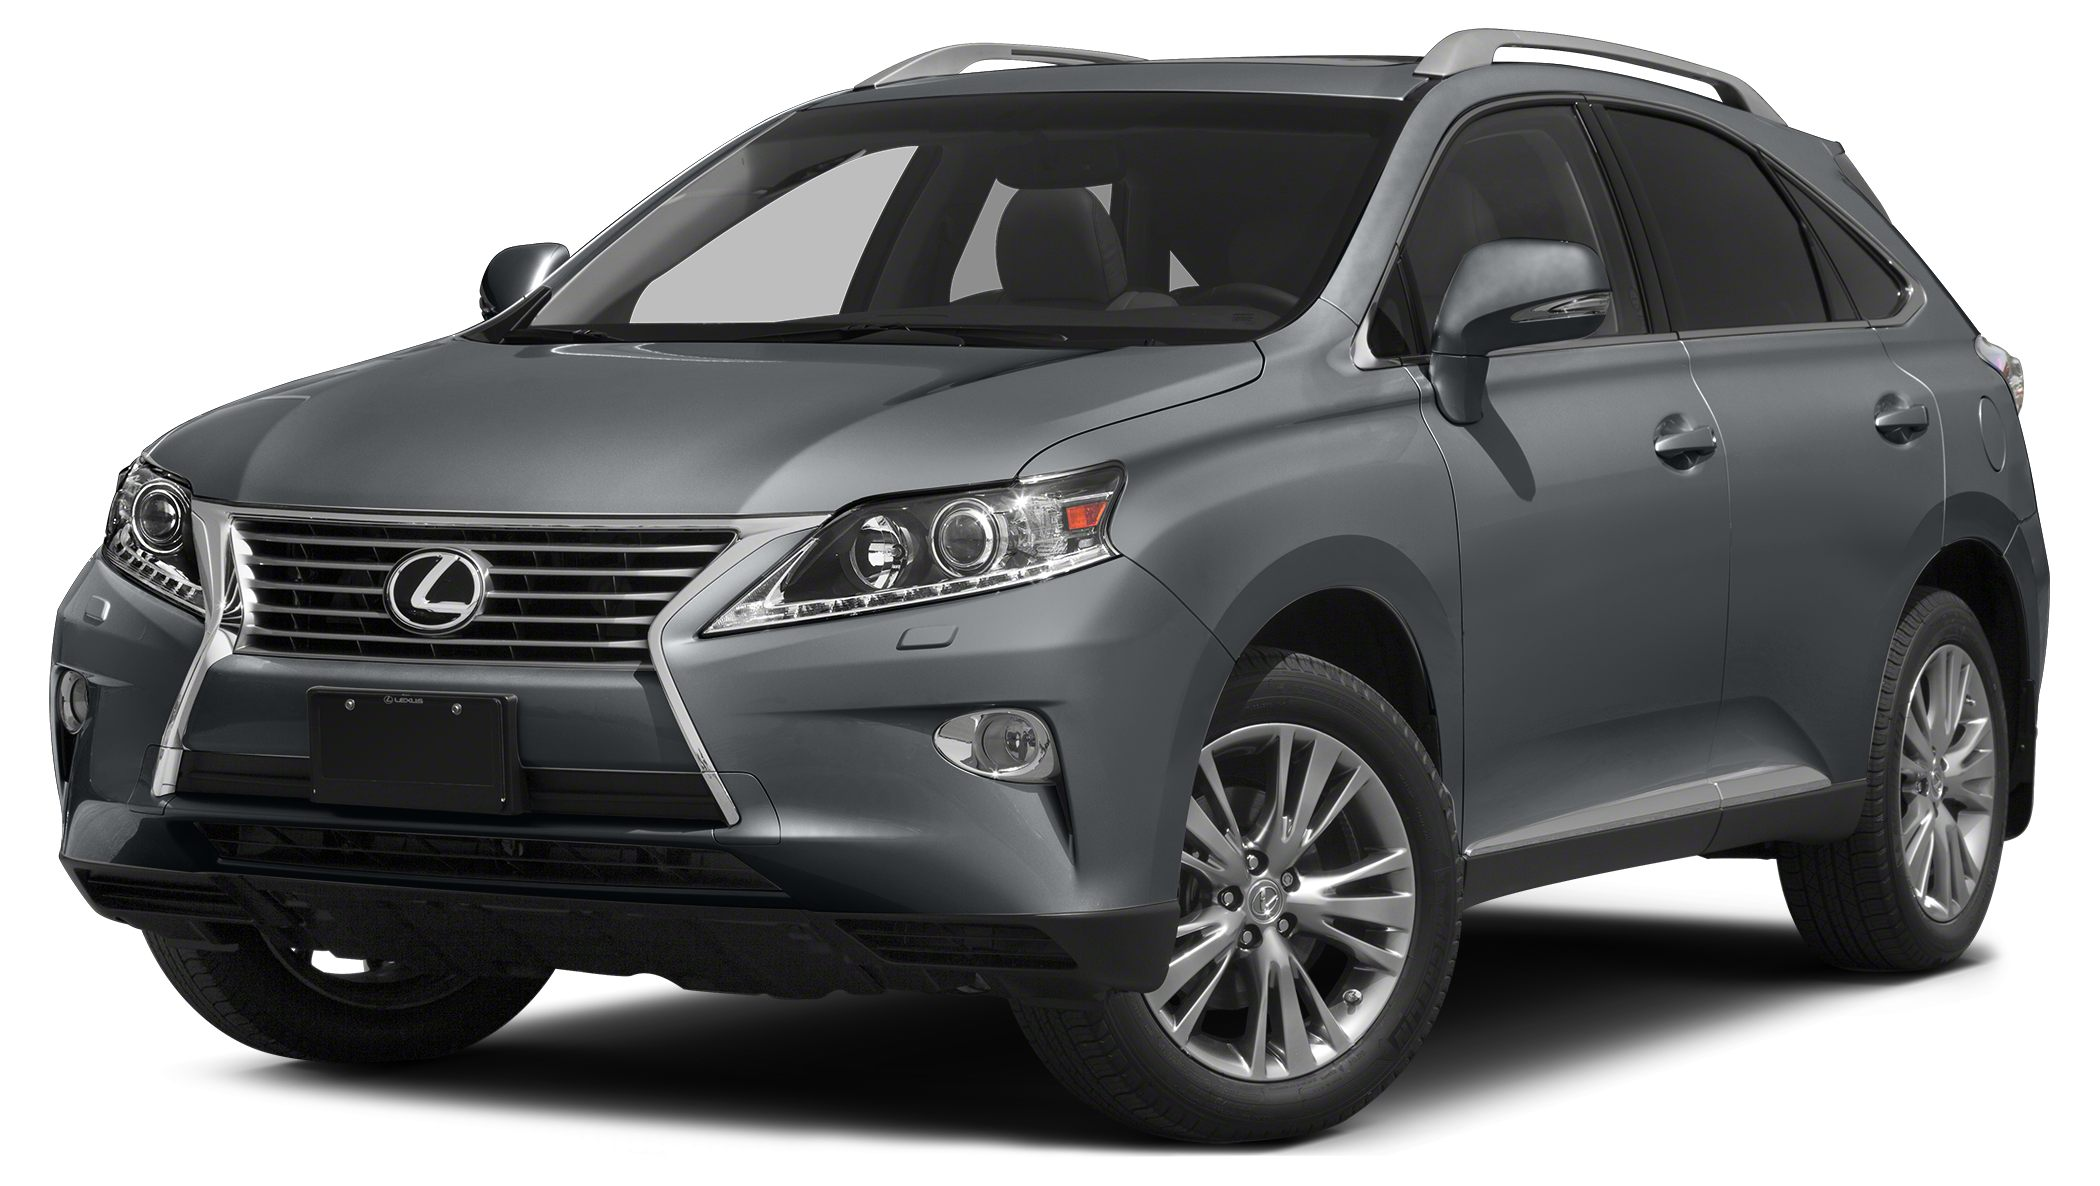 2014 Lexus RX 350 PLUS PKG PREMIUM PLUS PKG1 OWNERCARFAX CERTIFIEDAWD READY FOR ANY WEATHE